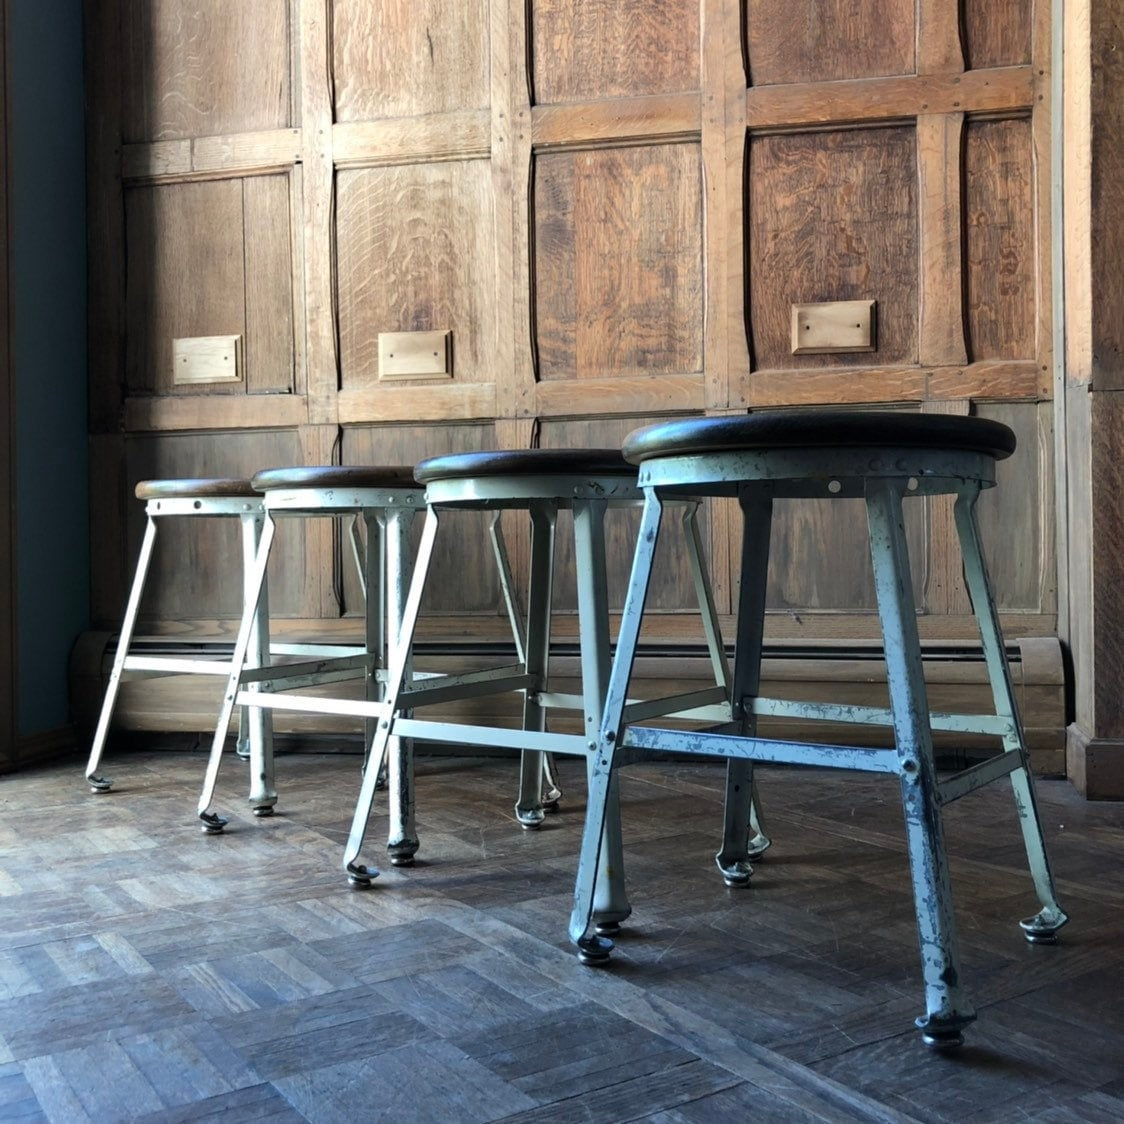 Phenomenal Vintage Industrial Stools Set Of Four Metal Drafting Stool Machost Co Dining Chair Design Ideas Machostcouk